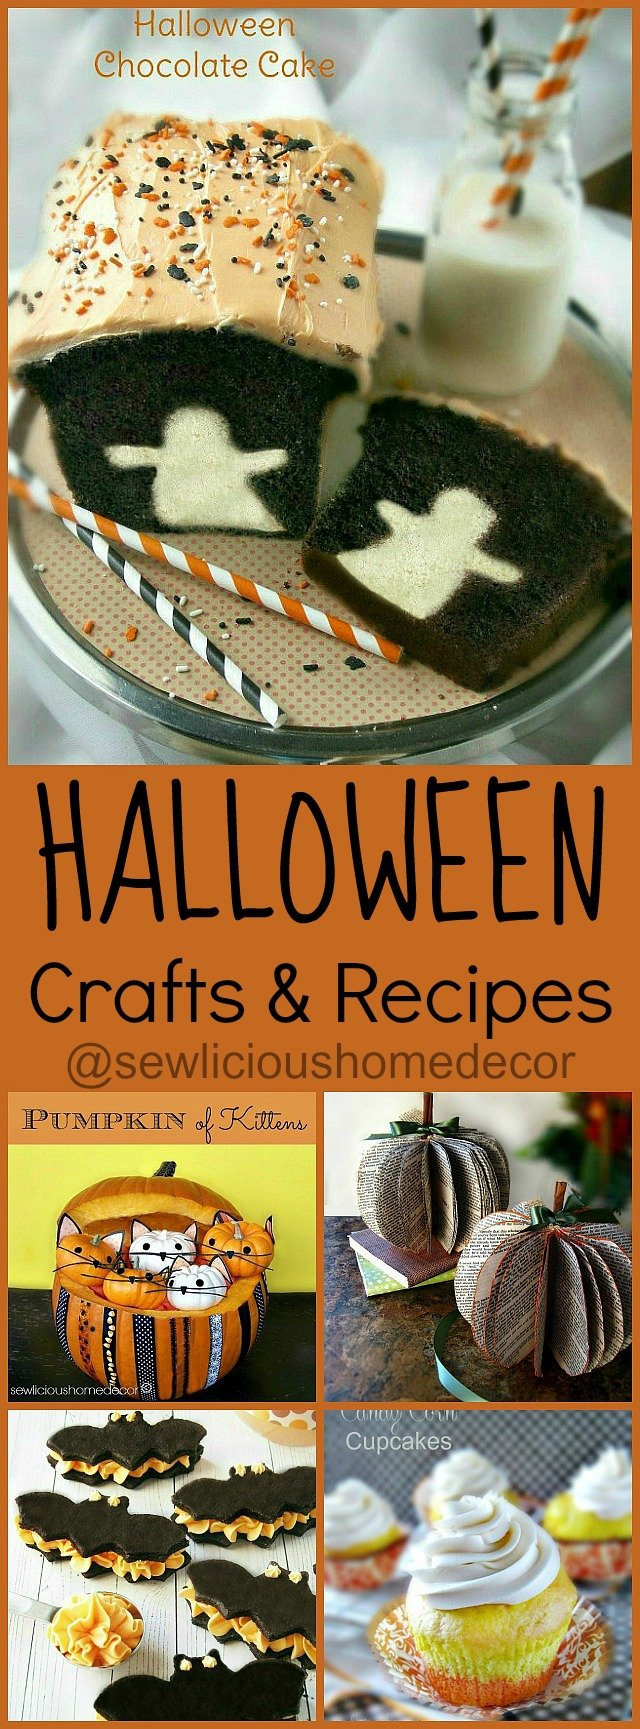 Halloween Crafts and Recipes by sewlicioushomedecor.com